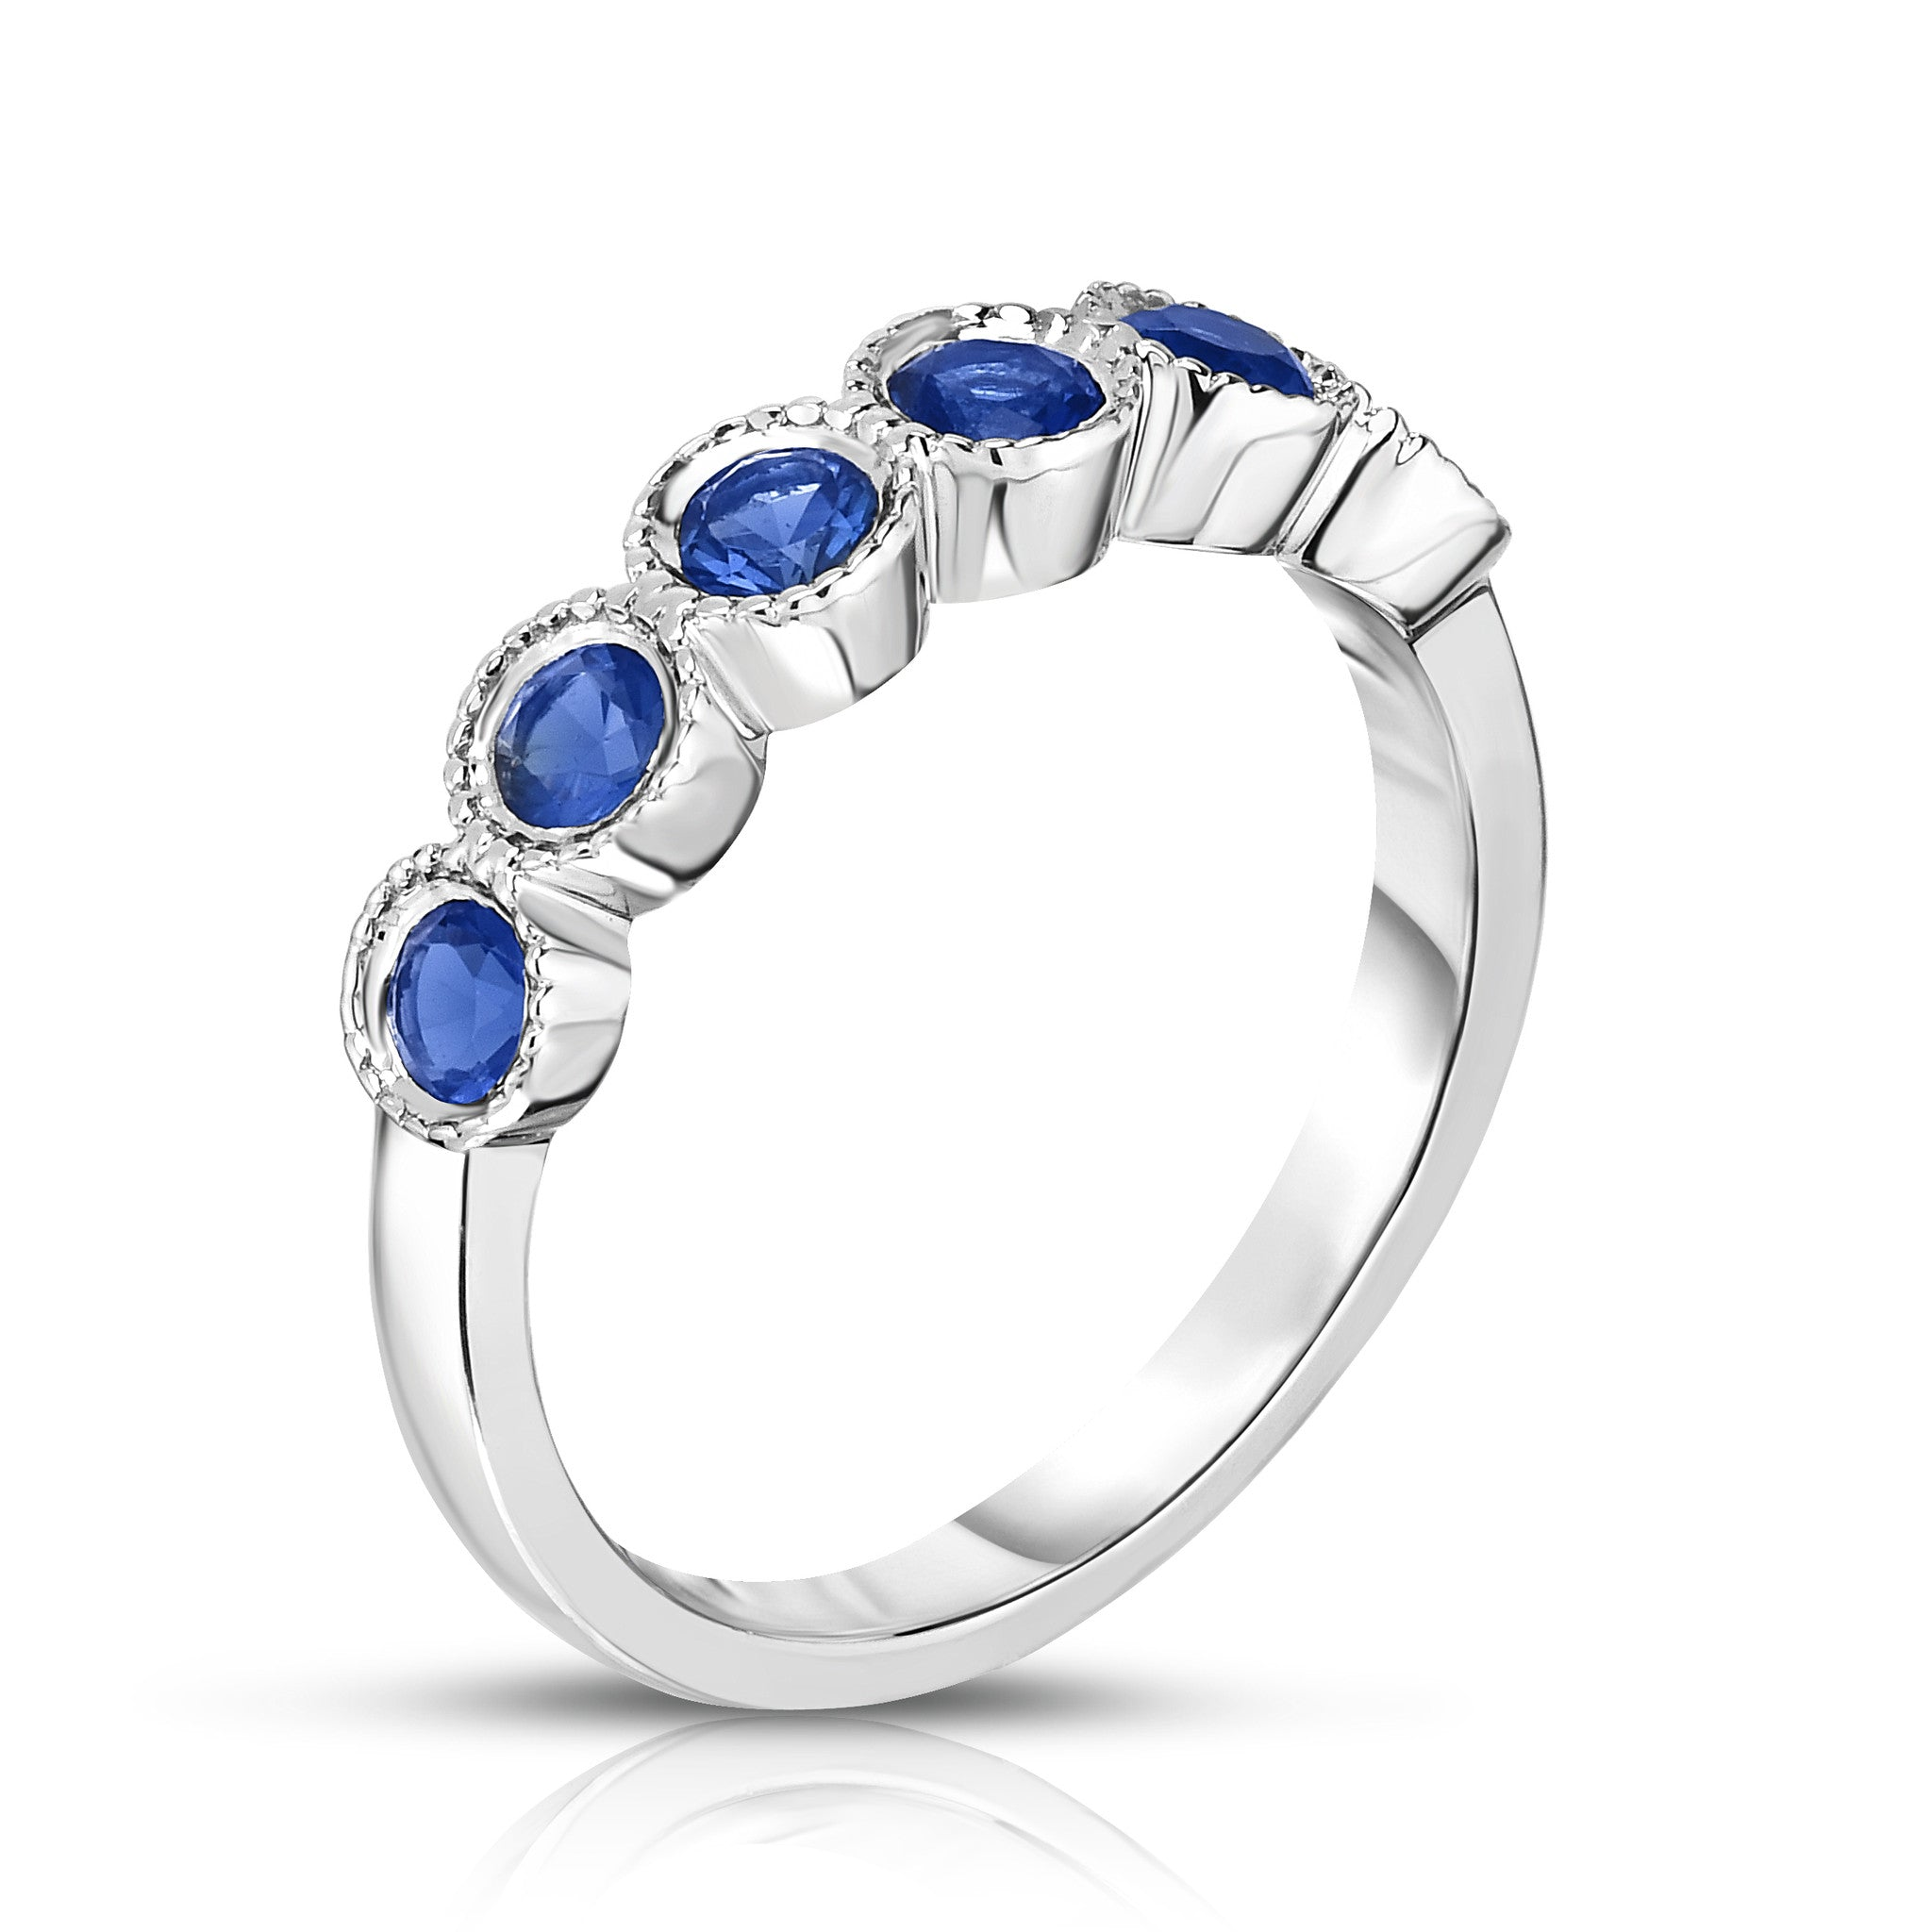 rings tapered nile engagement product blue wedding studio ring baguette platinum